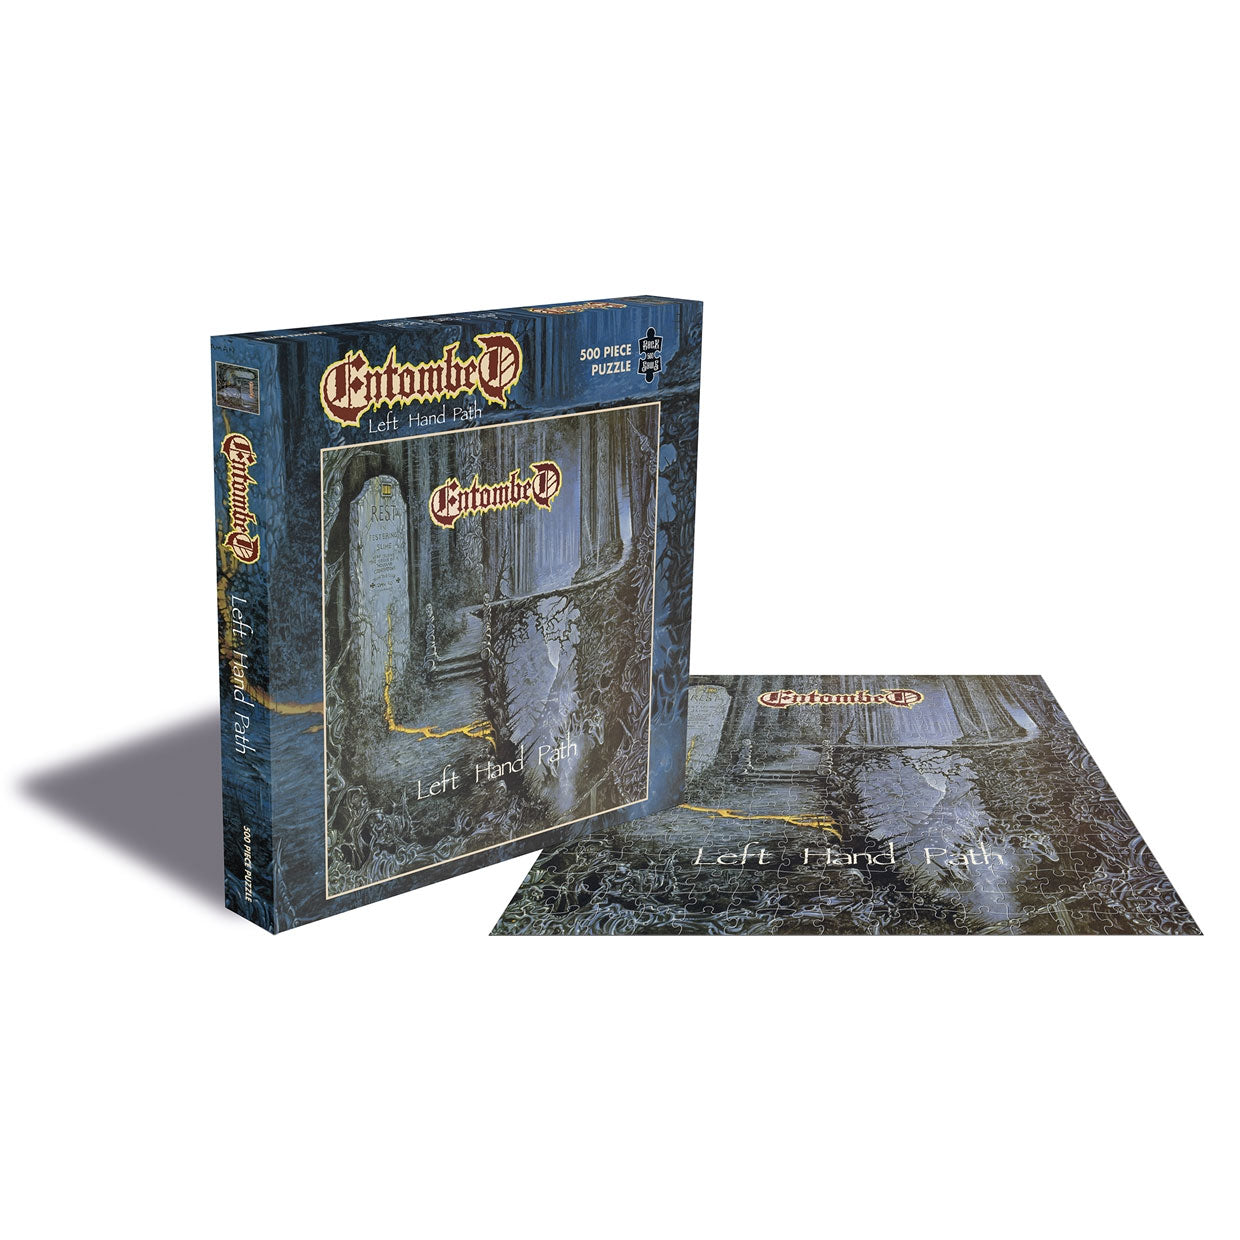 Entombed - Left Hand Path (Jigsaw Puzzle)